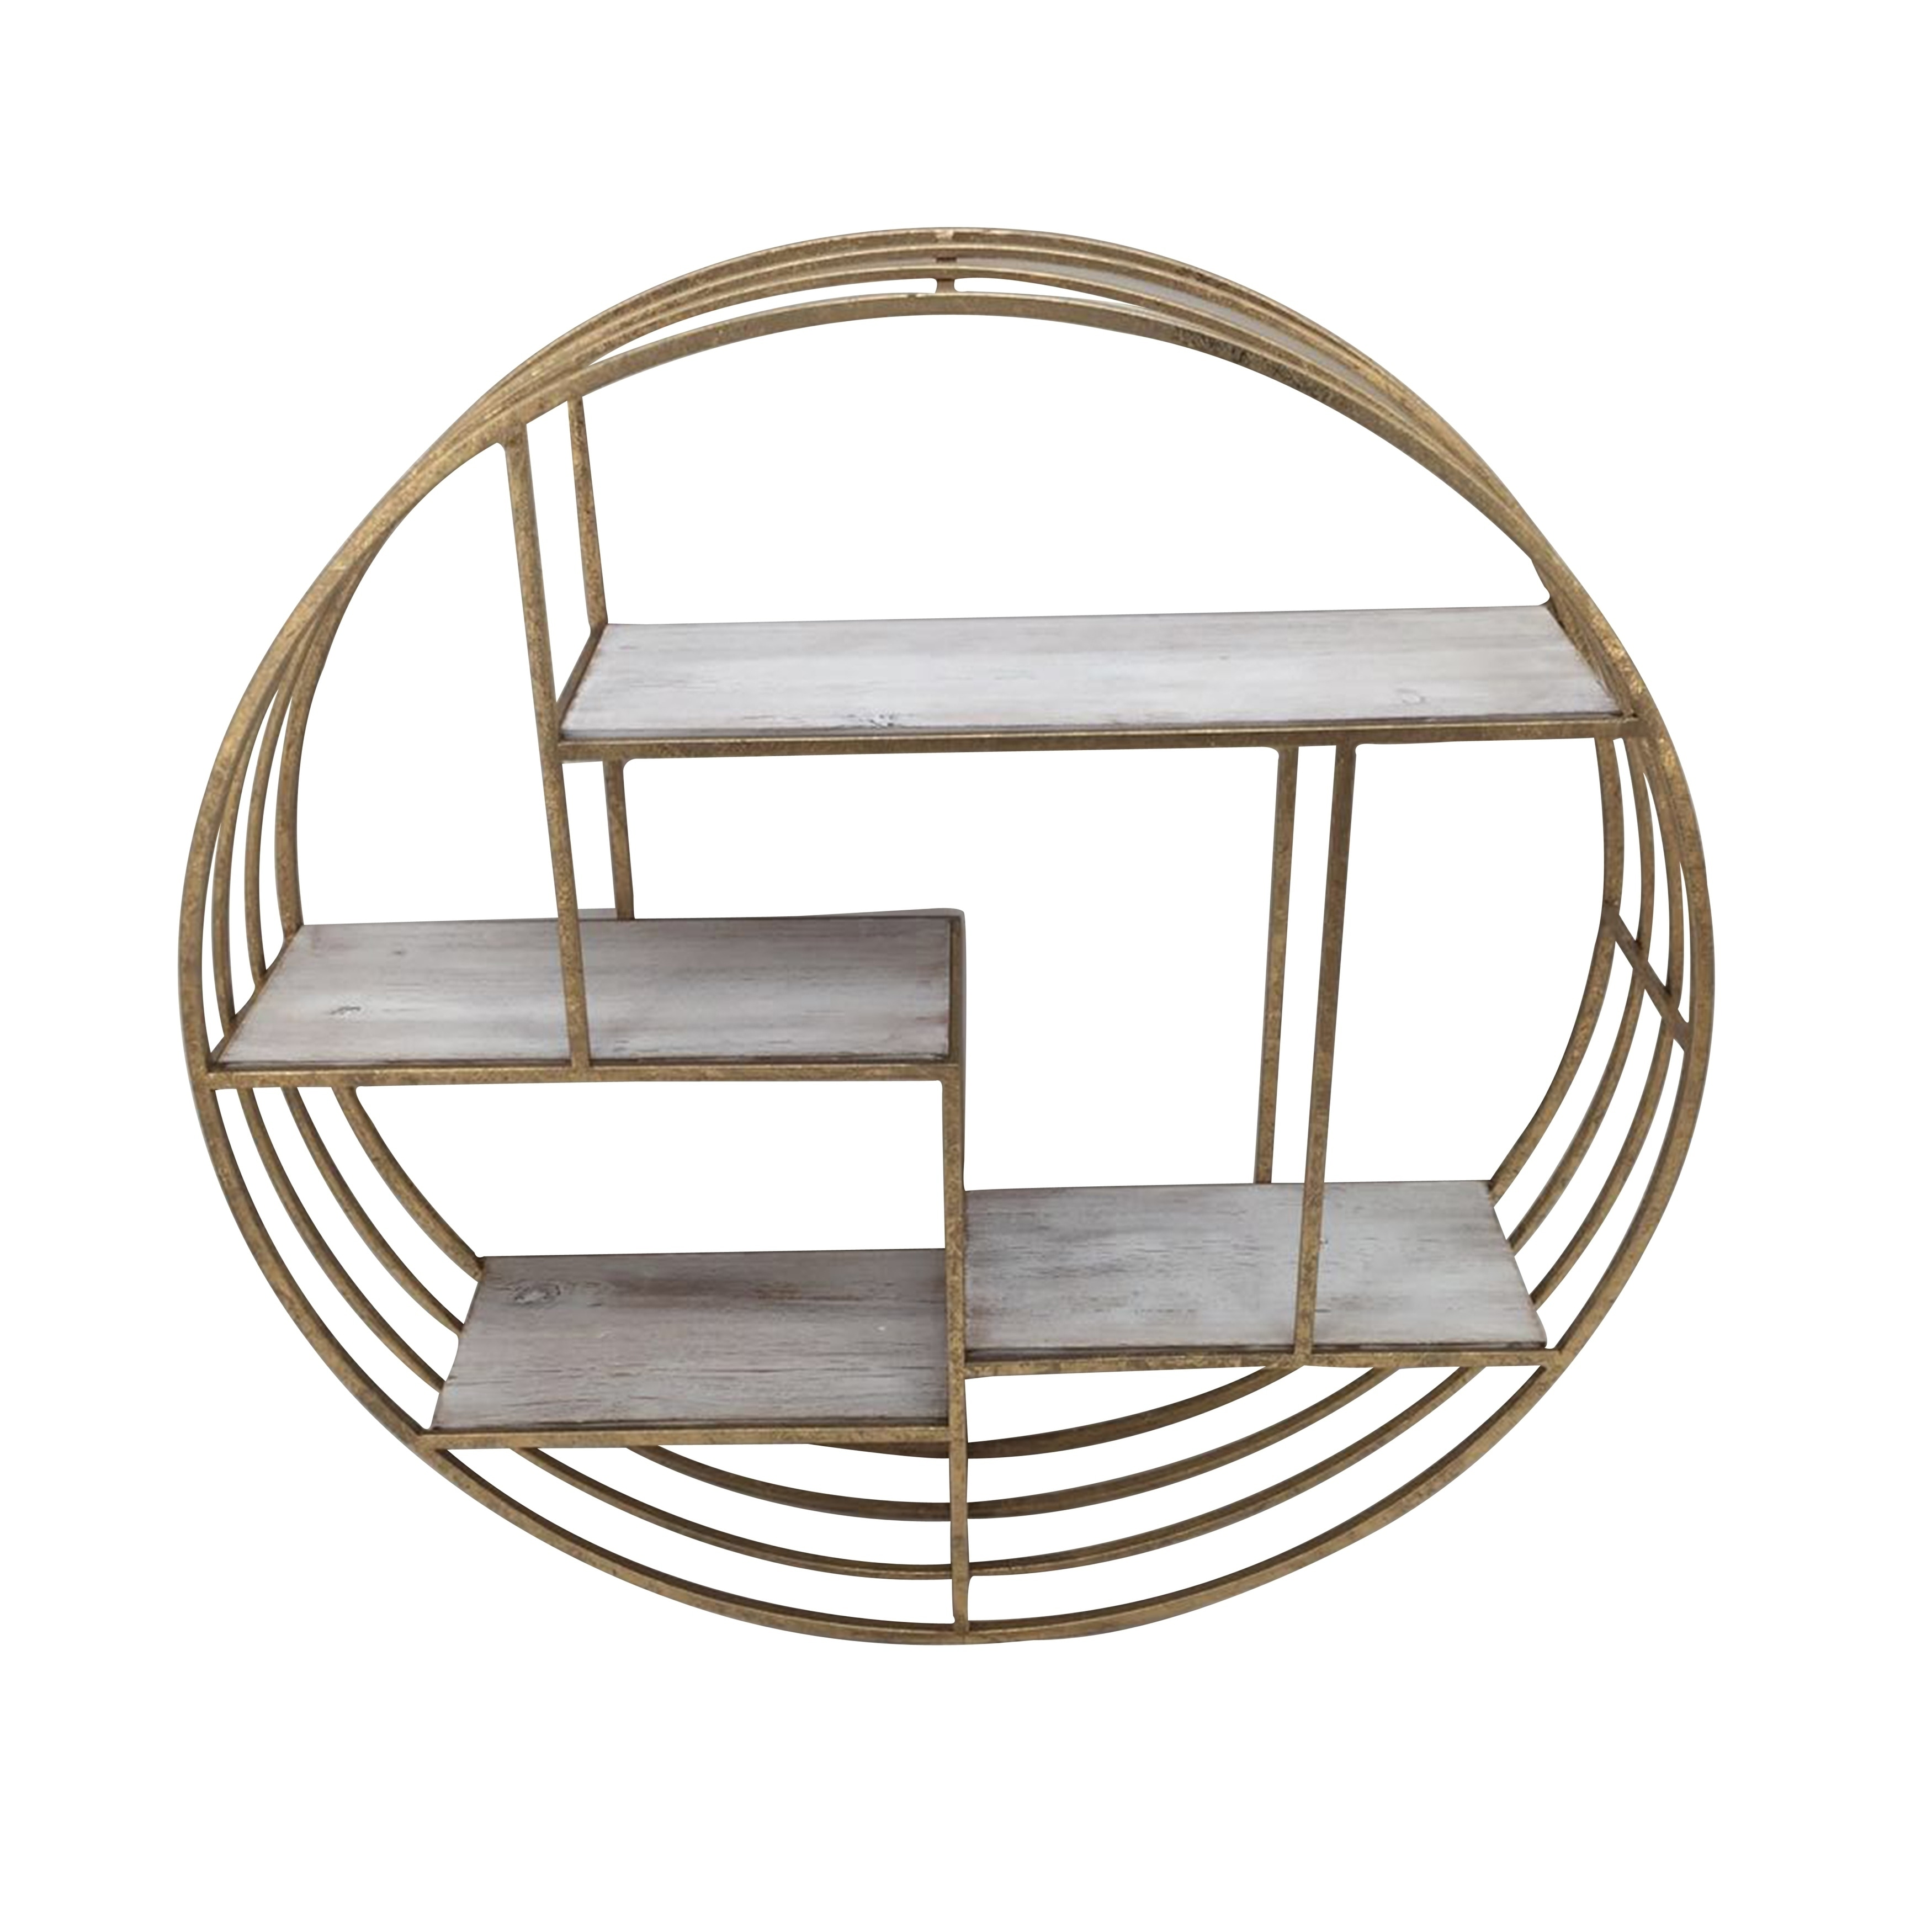 Round Metal Framed Wall Shelf With Four Wooden Display Spaces Gold And White